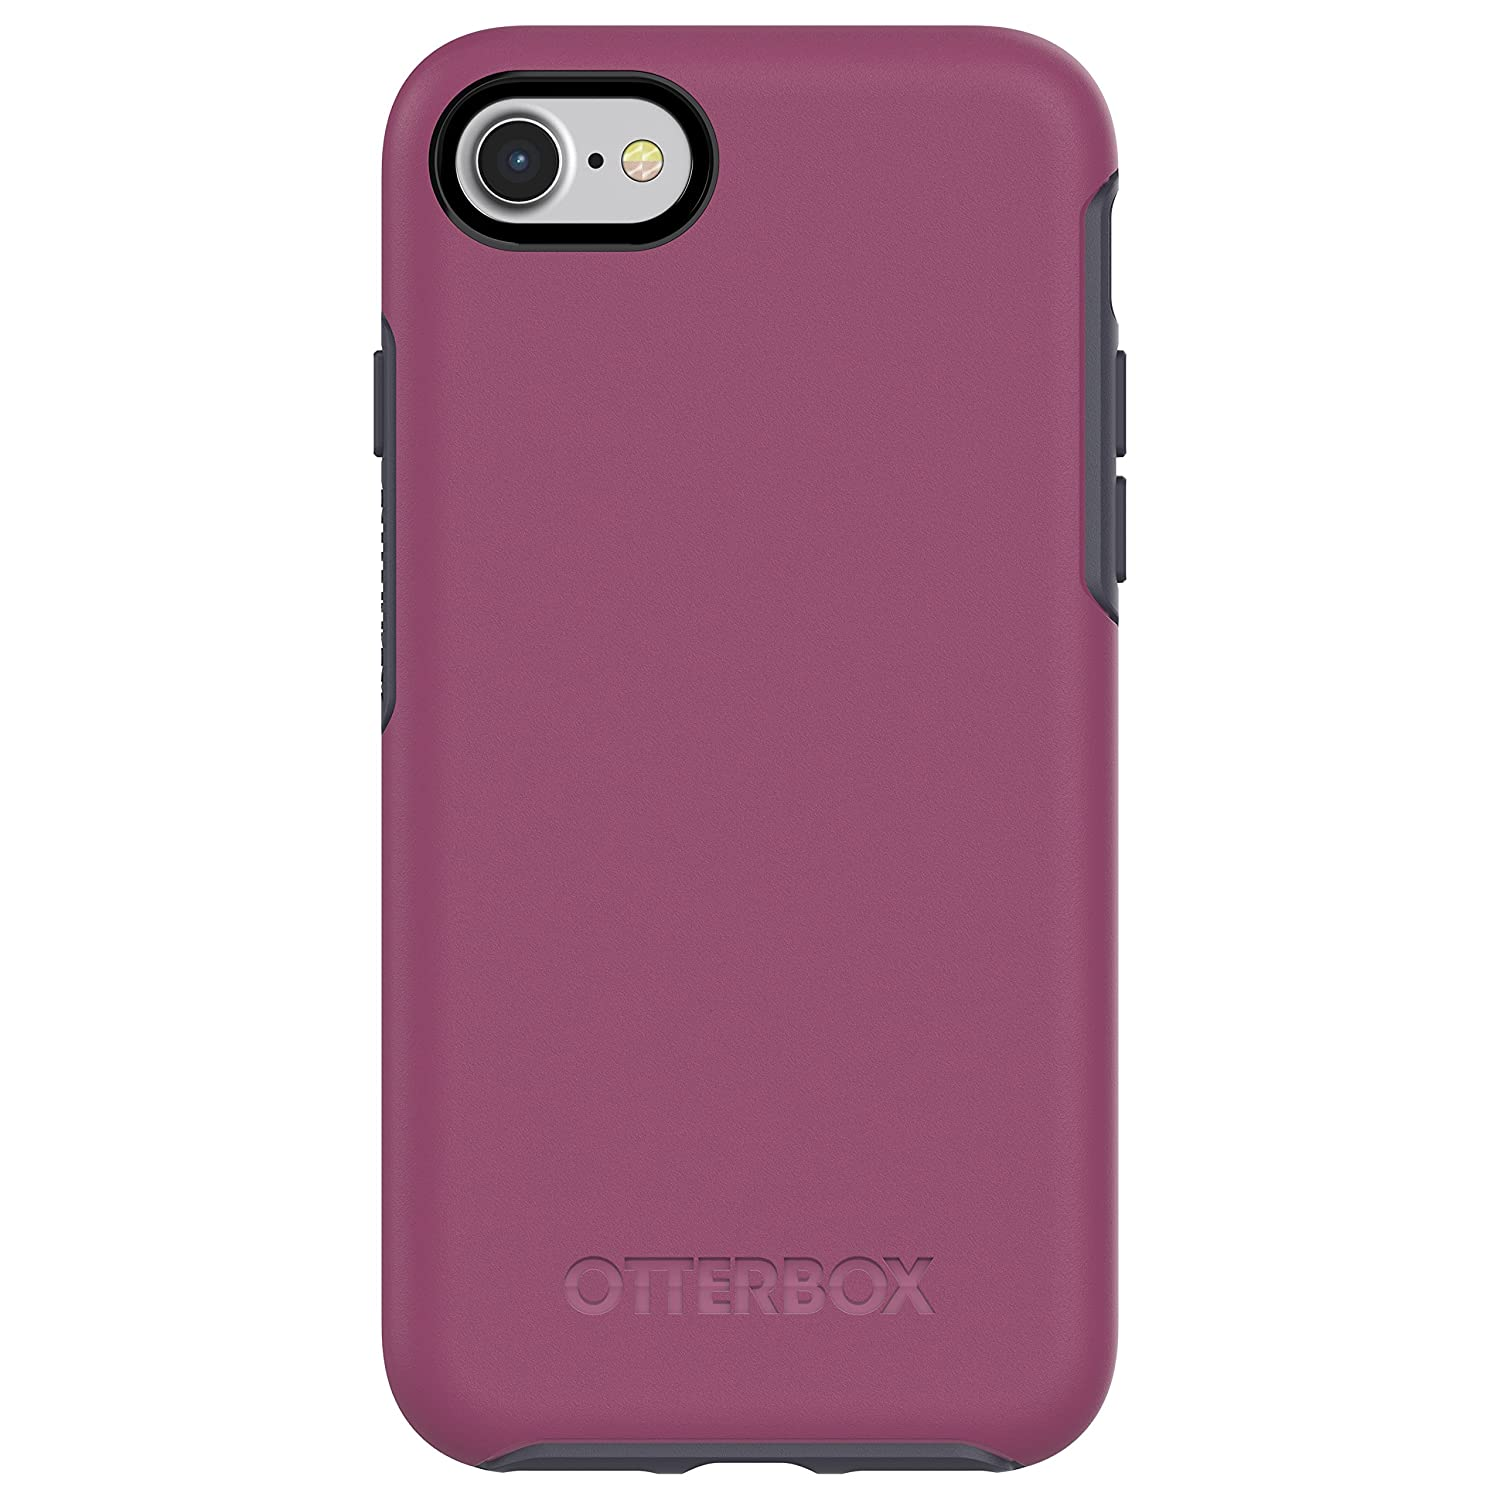 OtterBox SYMMETRY SERIES Case for iPhone 8 & iPhone 7 (NOT Plus) - Retail Packaging - MIX BERRY JAM (BATON ROUGE/MARITIME BLUE)